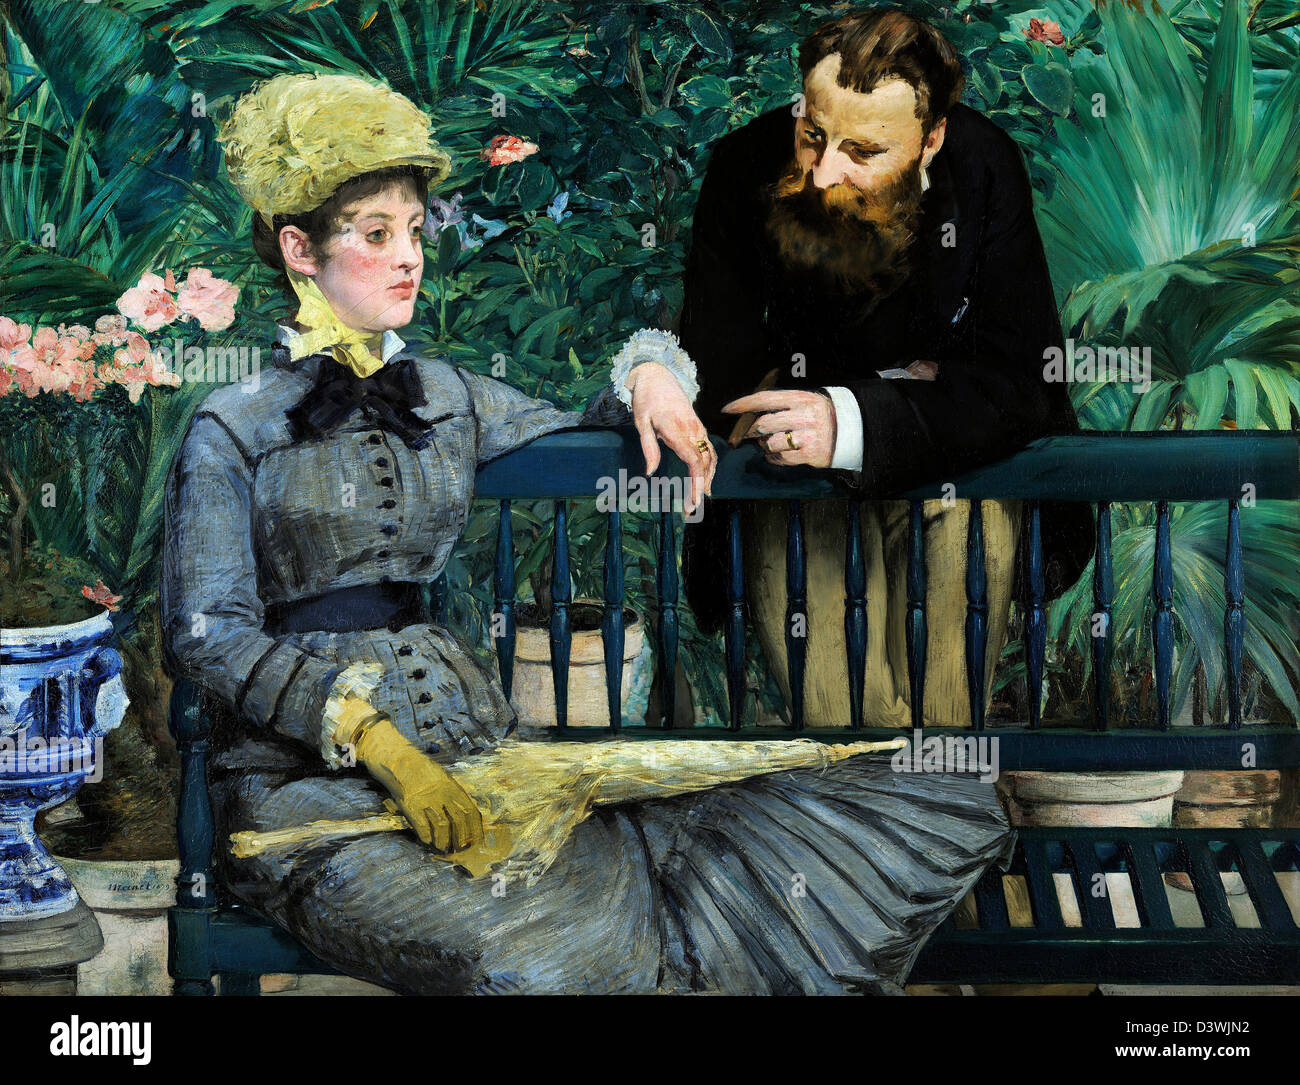 Edouard Manet, In the Conservatory 1879 Oil on canvas. Alte Nationalgalerie, Berlin - Stock Image